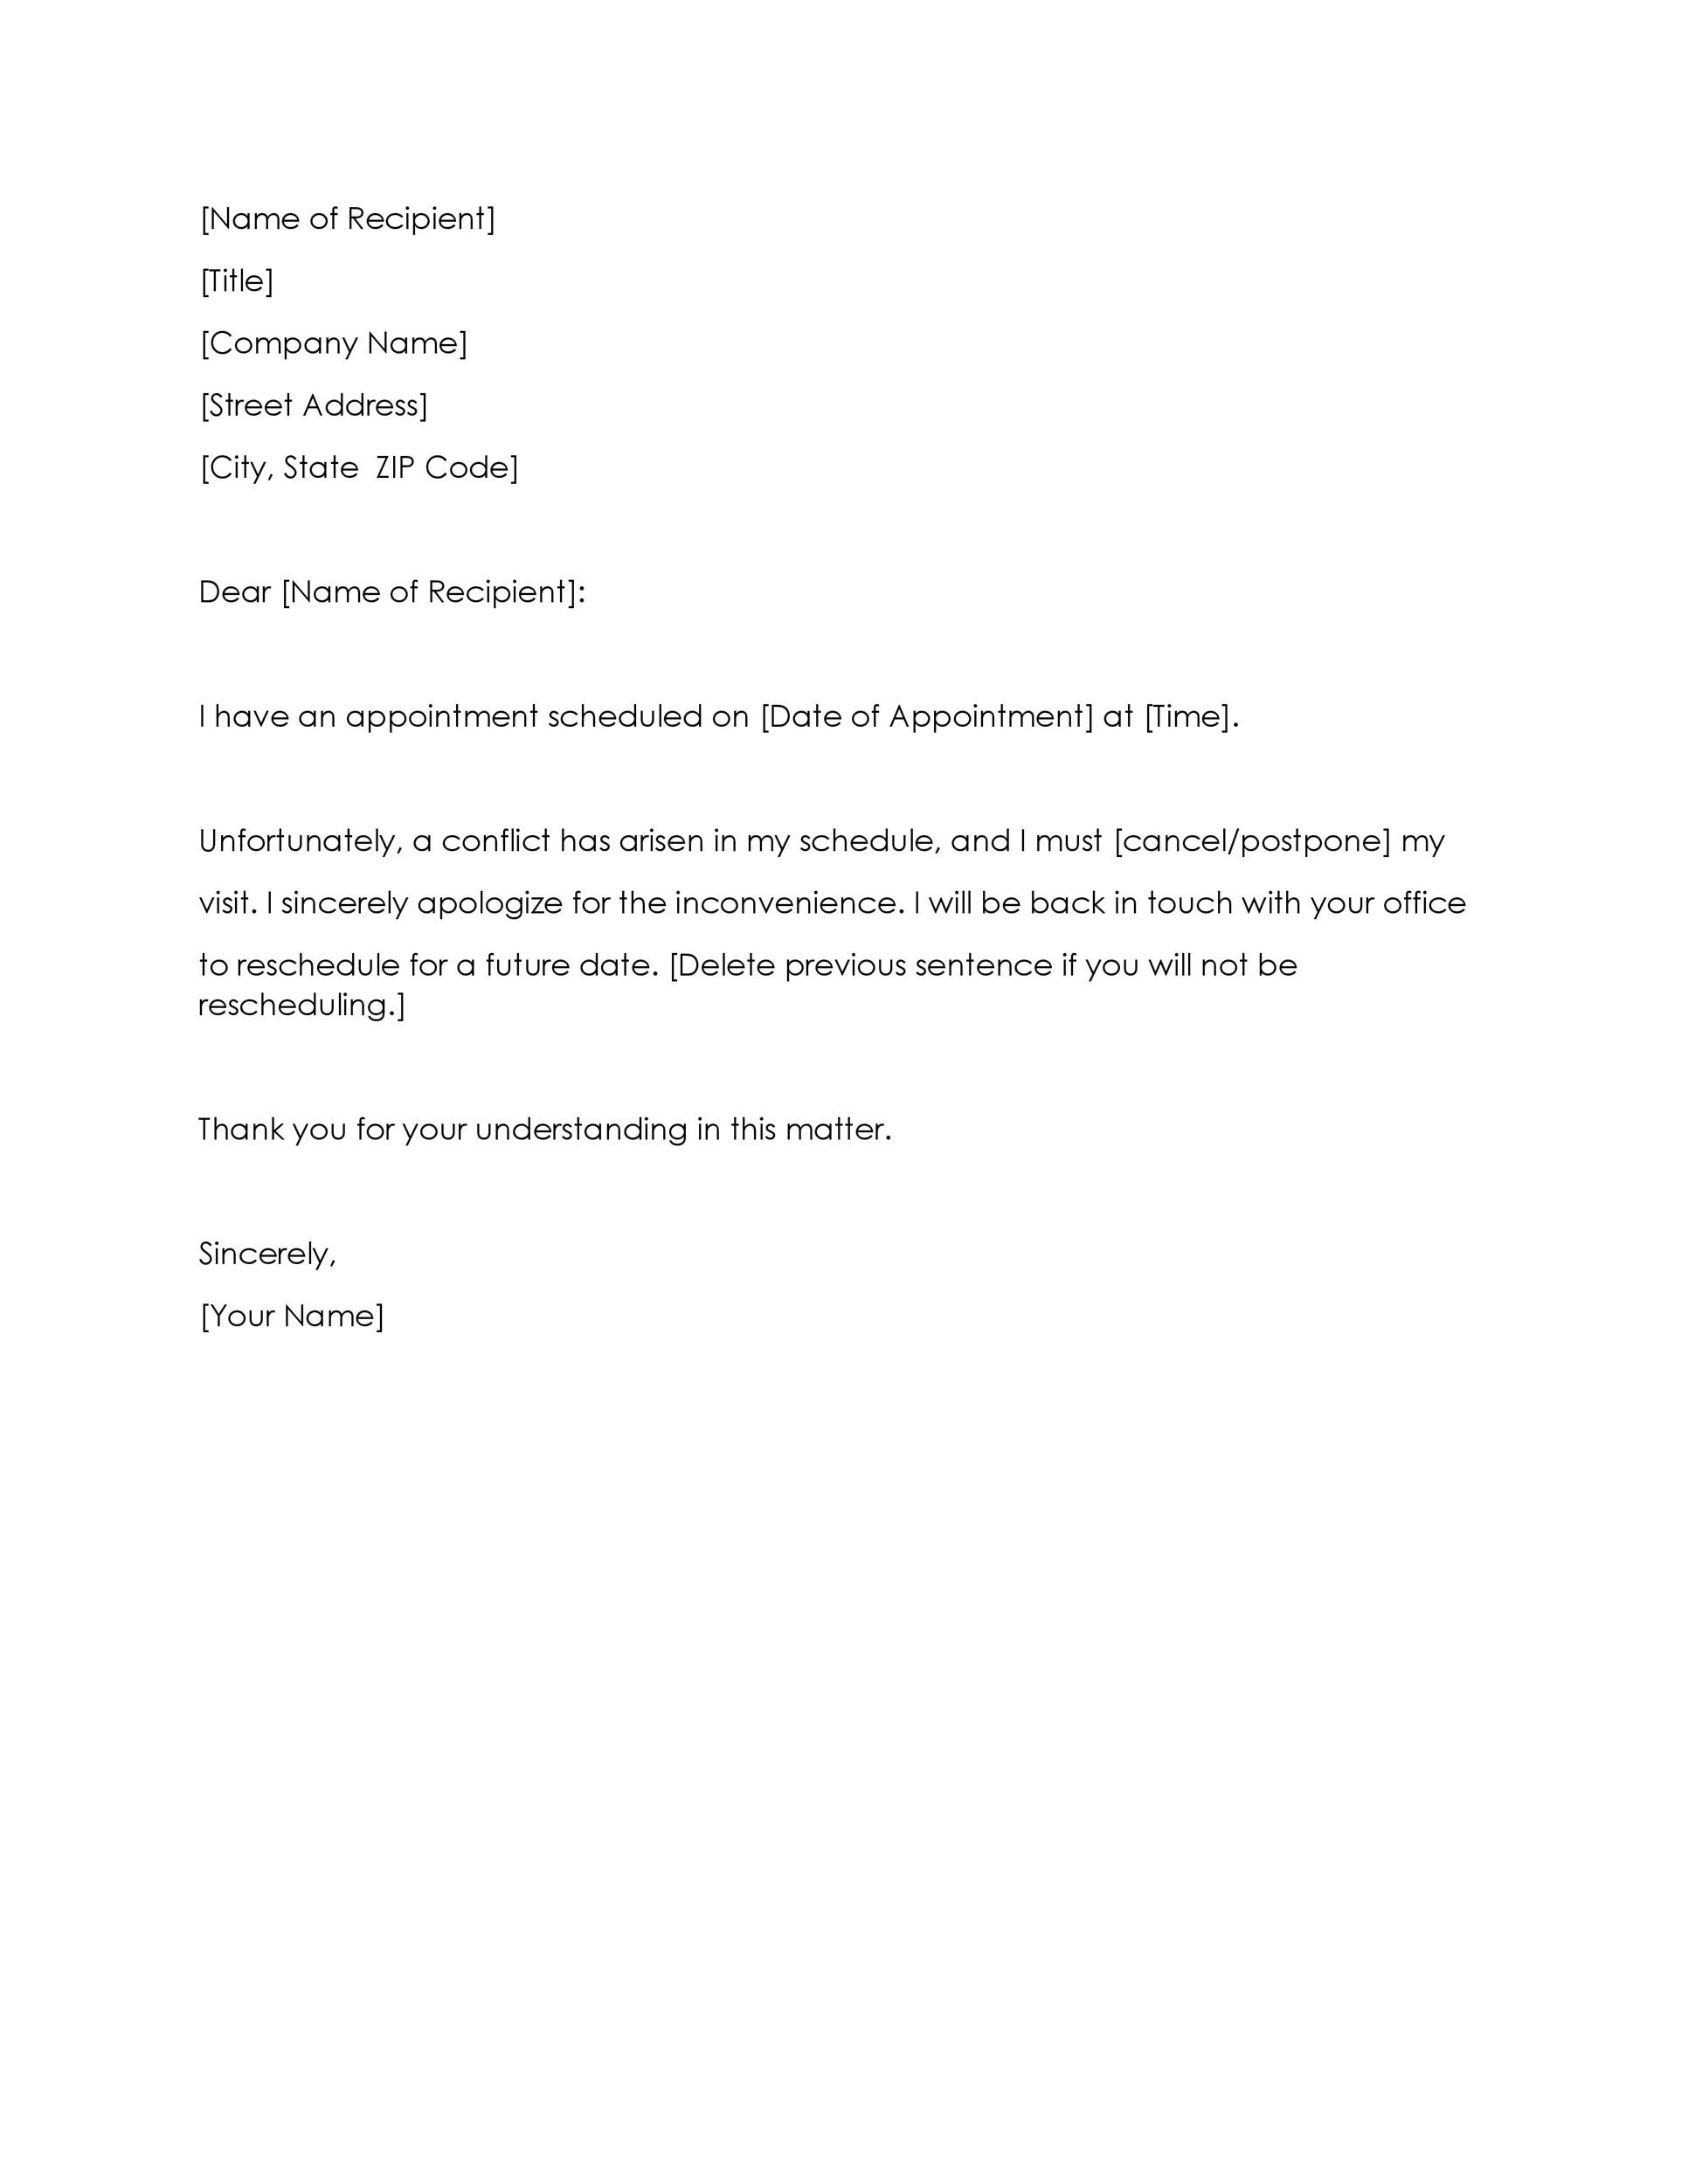 Insurance Cancellation Letter Template from templatelab.com